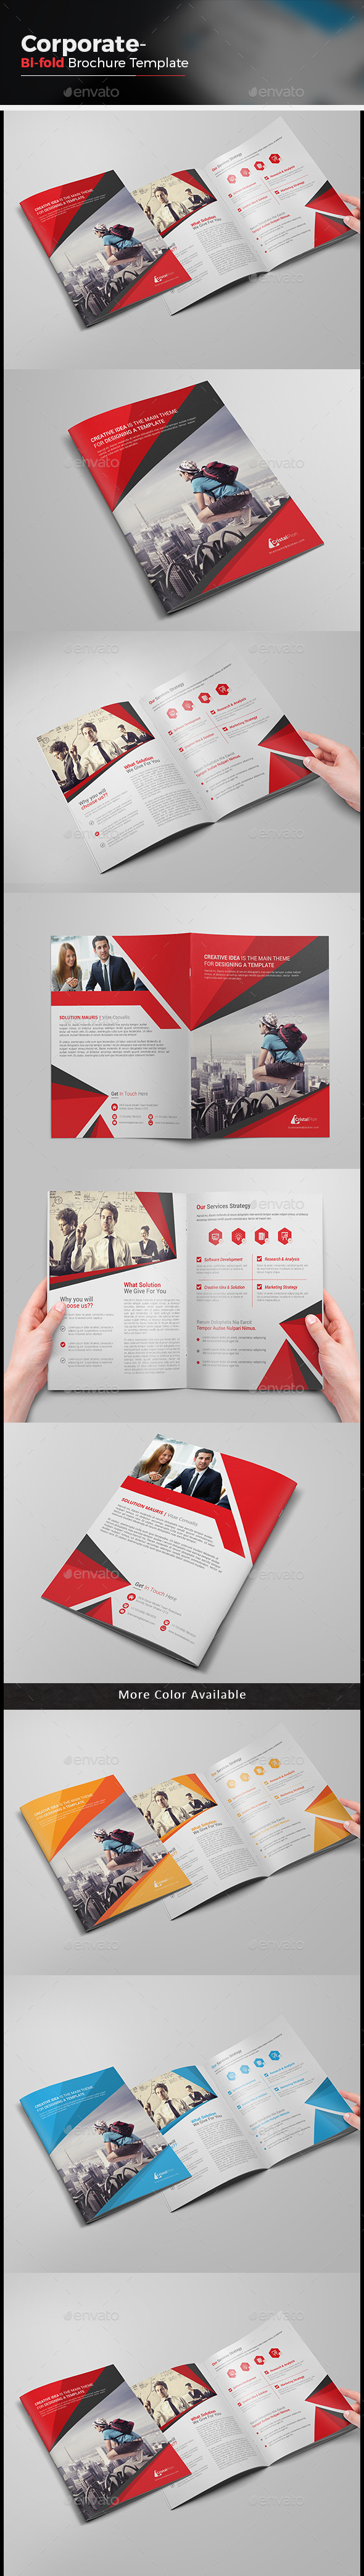 Business Bi-fold Brochure-Multipurpose - Corporate Brochures